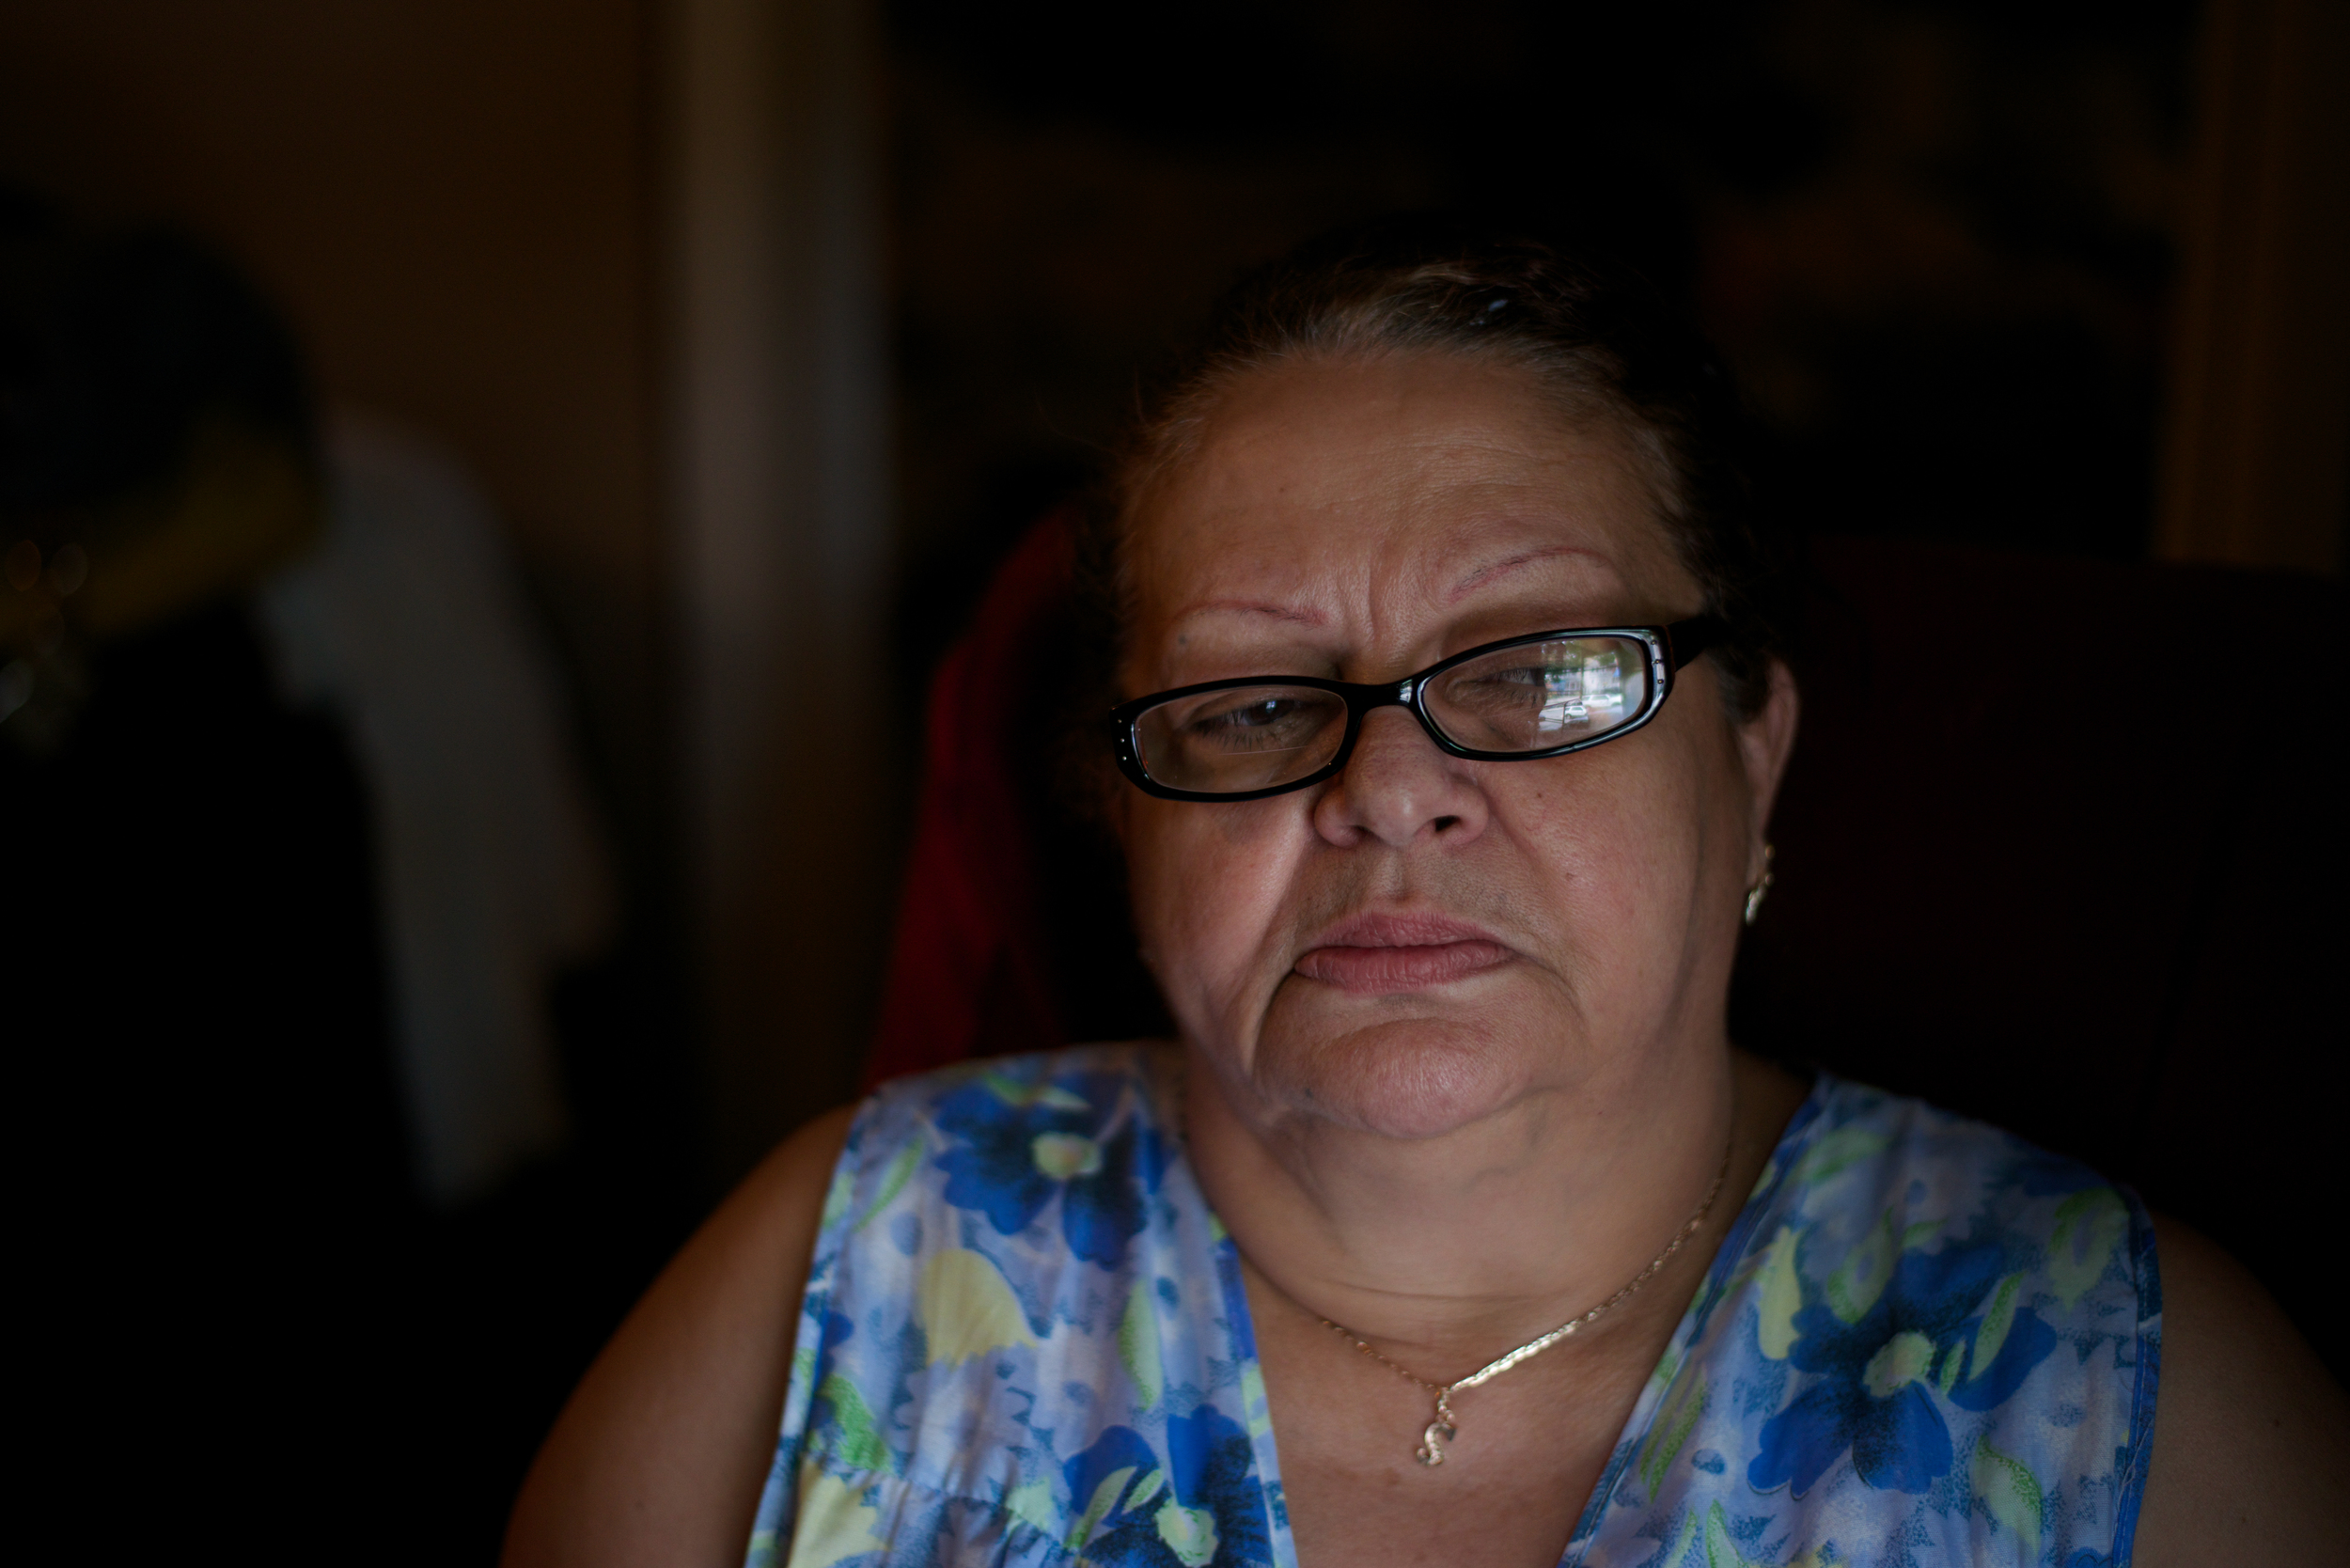 Blanca Sierra, the mother of Denis Reyes, poses for a portrait by her living-room window in her Bronx apartment on May 28, 2015. Her son died in police custody on May 14, 2015.